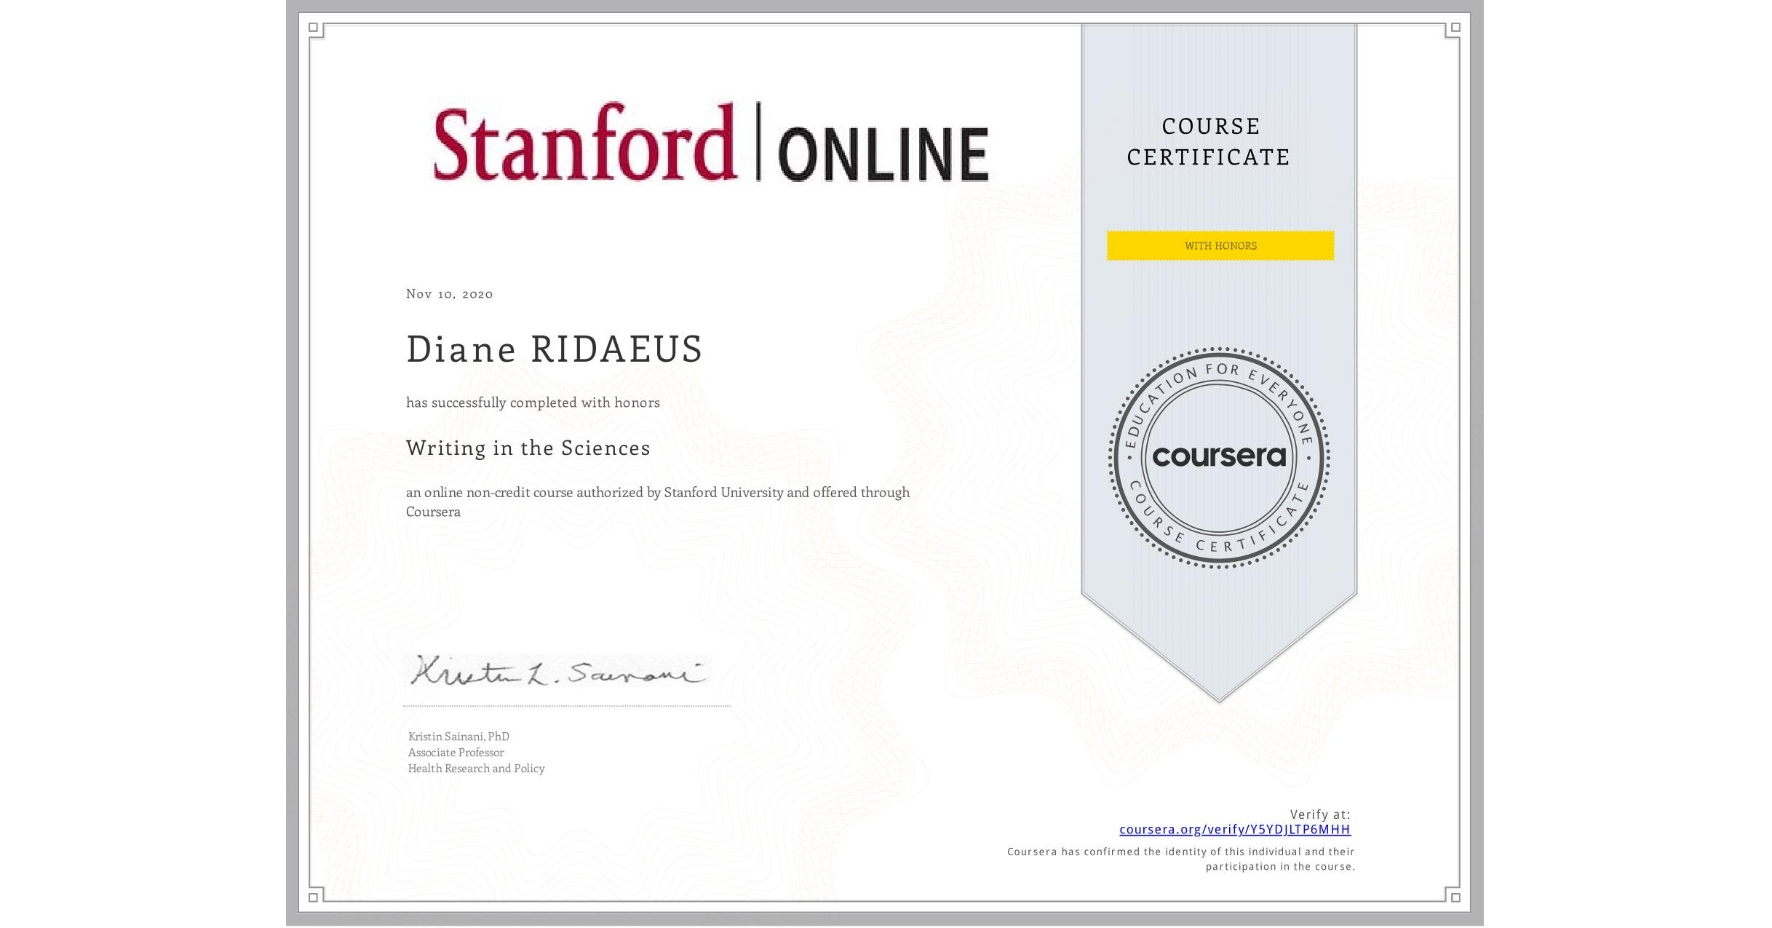 View certificate for Diane RIDAEUS, Writing in the Sciences, an online non-credit course authorized by Stanford University and offered through Coursera